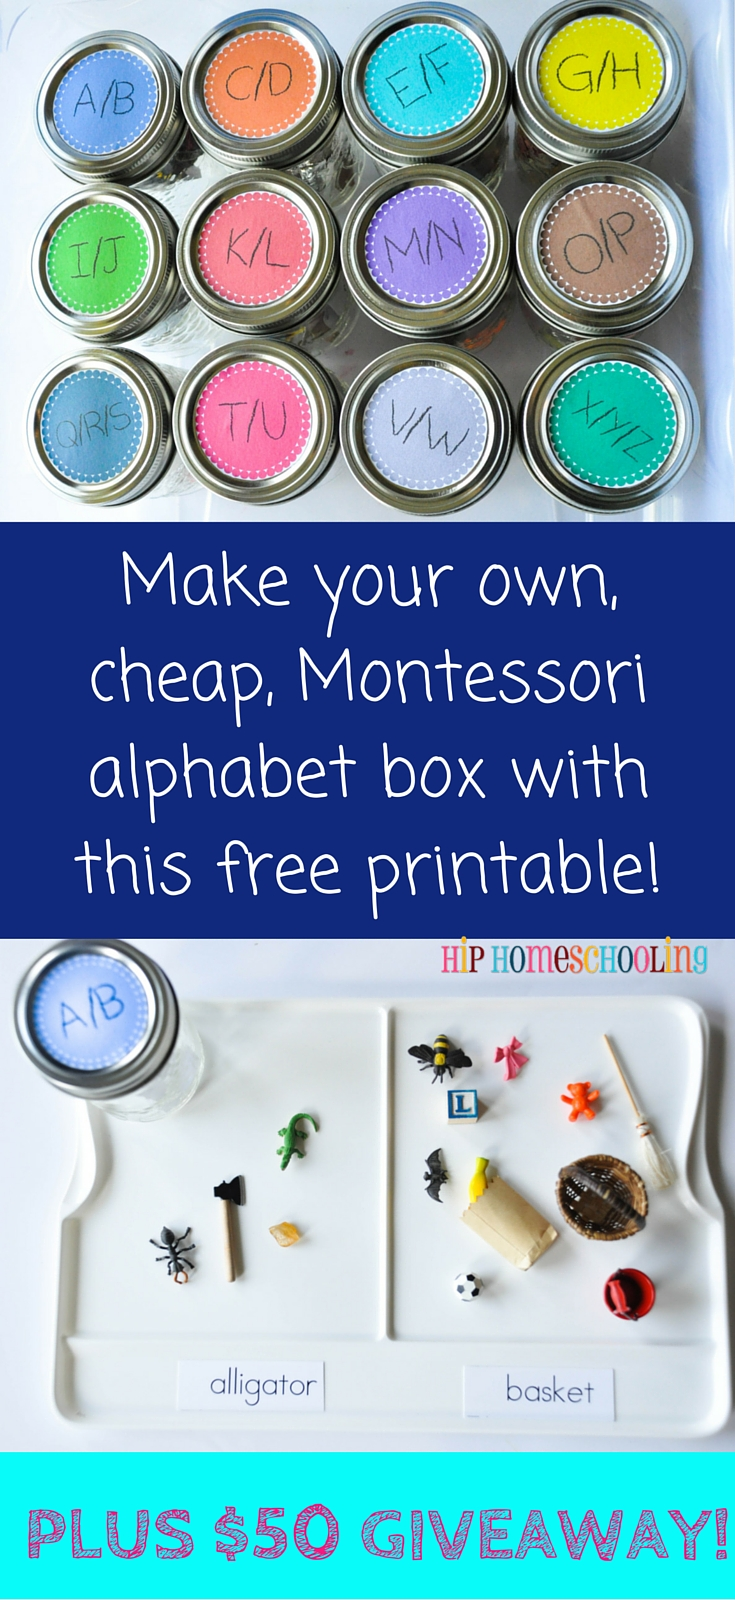 Make your own, cheap, Montessori alphabet box with this free printable! Plus #entertowin a $50 gift card from @montessoriserv #montessoriservices #montessori #alphabetbox #freeprintable